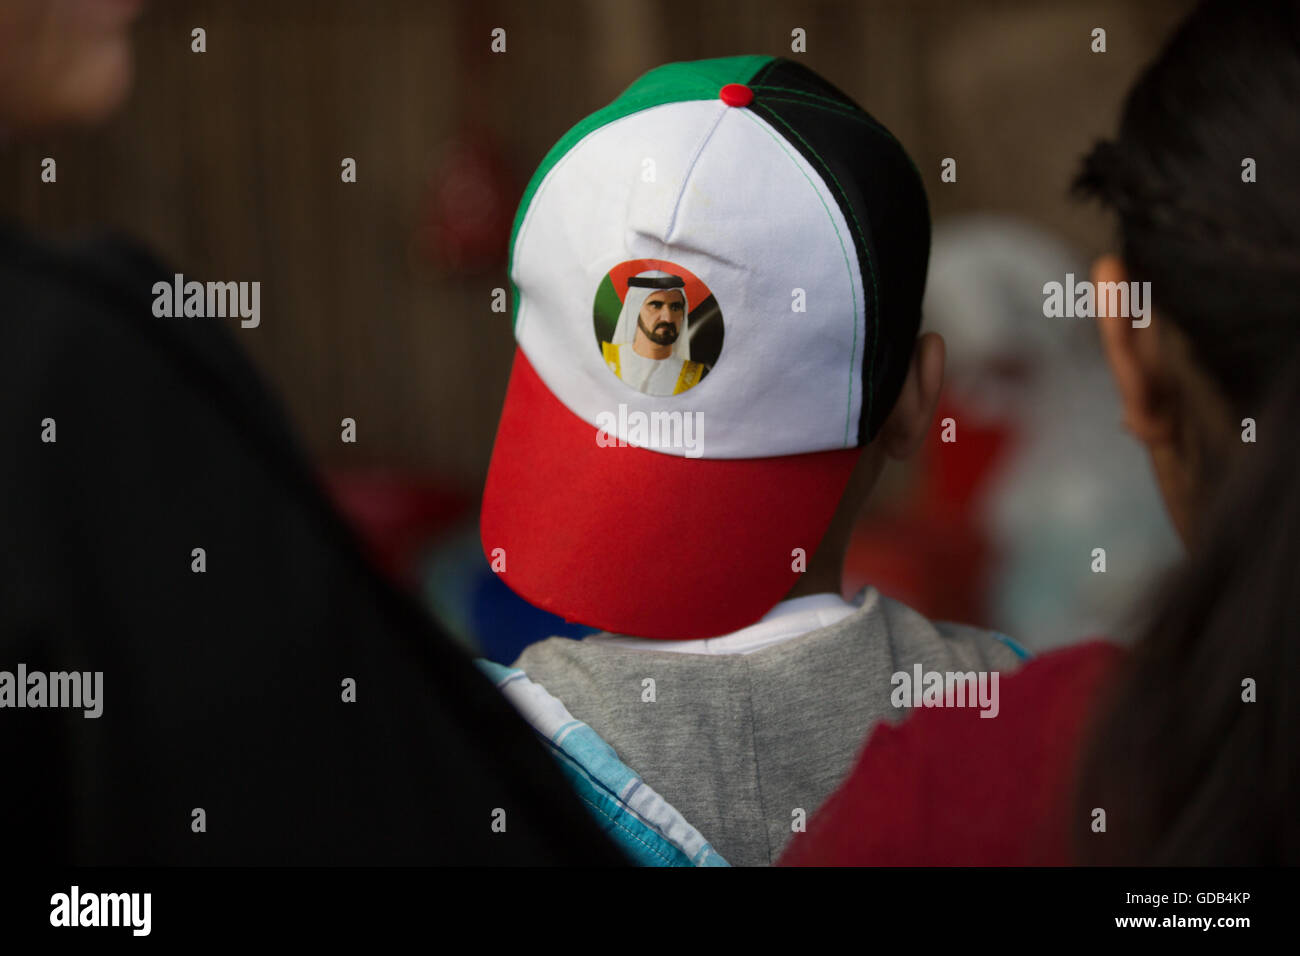 A boy wears a cap with the Emirati flag on it backwards for National Dress.  A photograph of Sheikh Mohammed bin Rashid Al Maktoum 96681838058